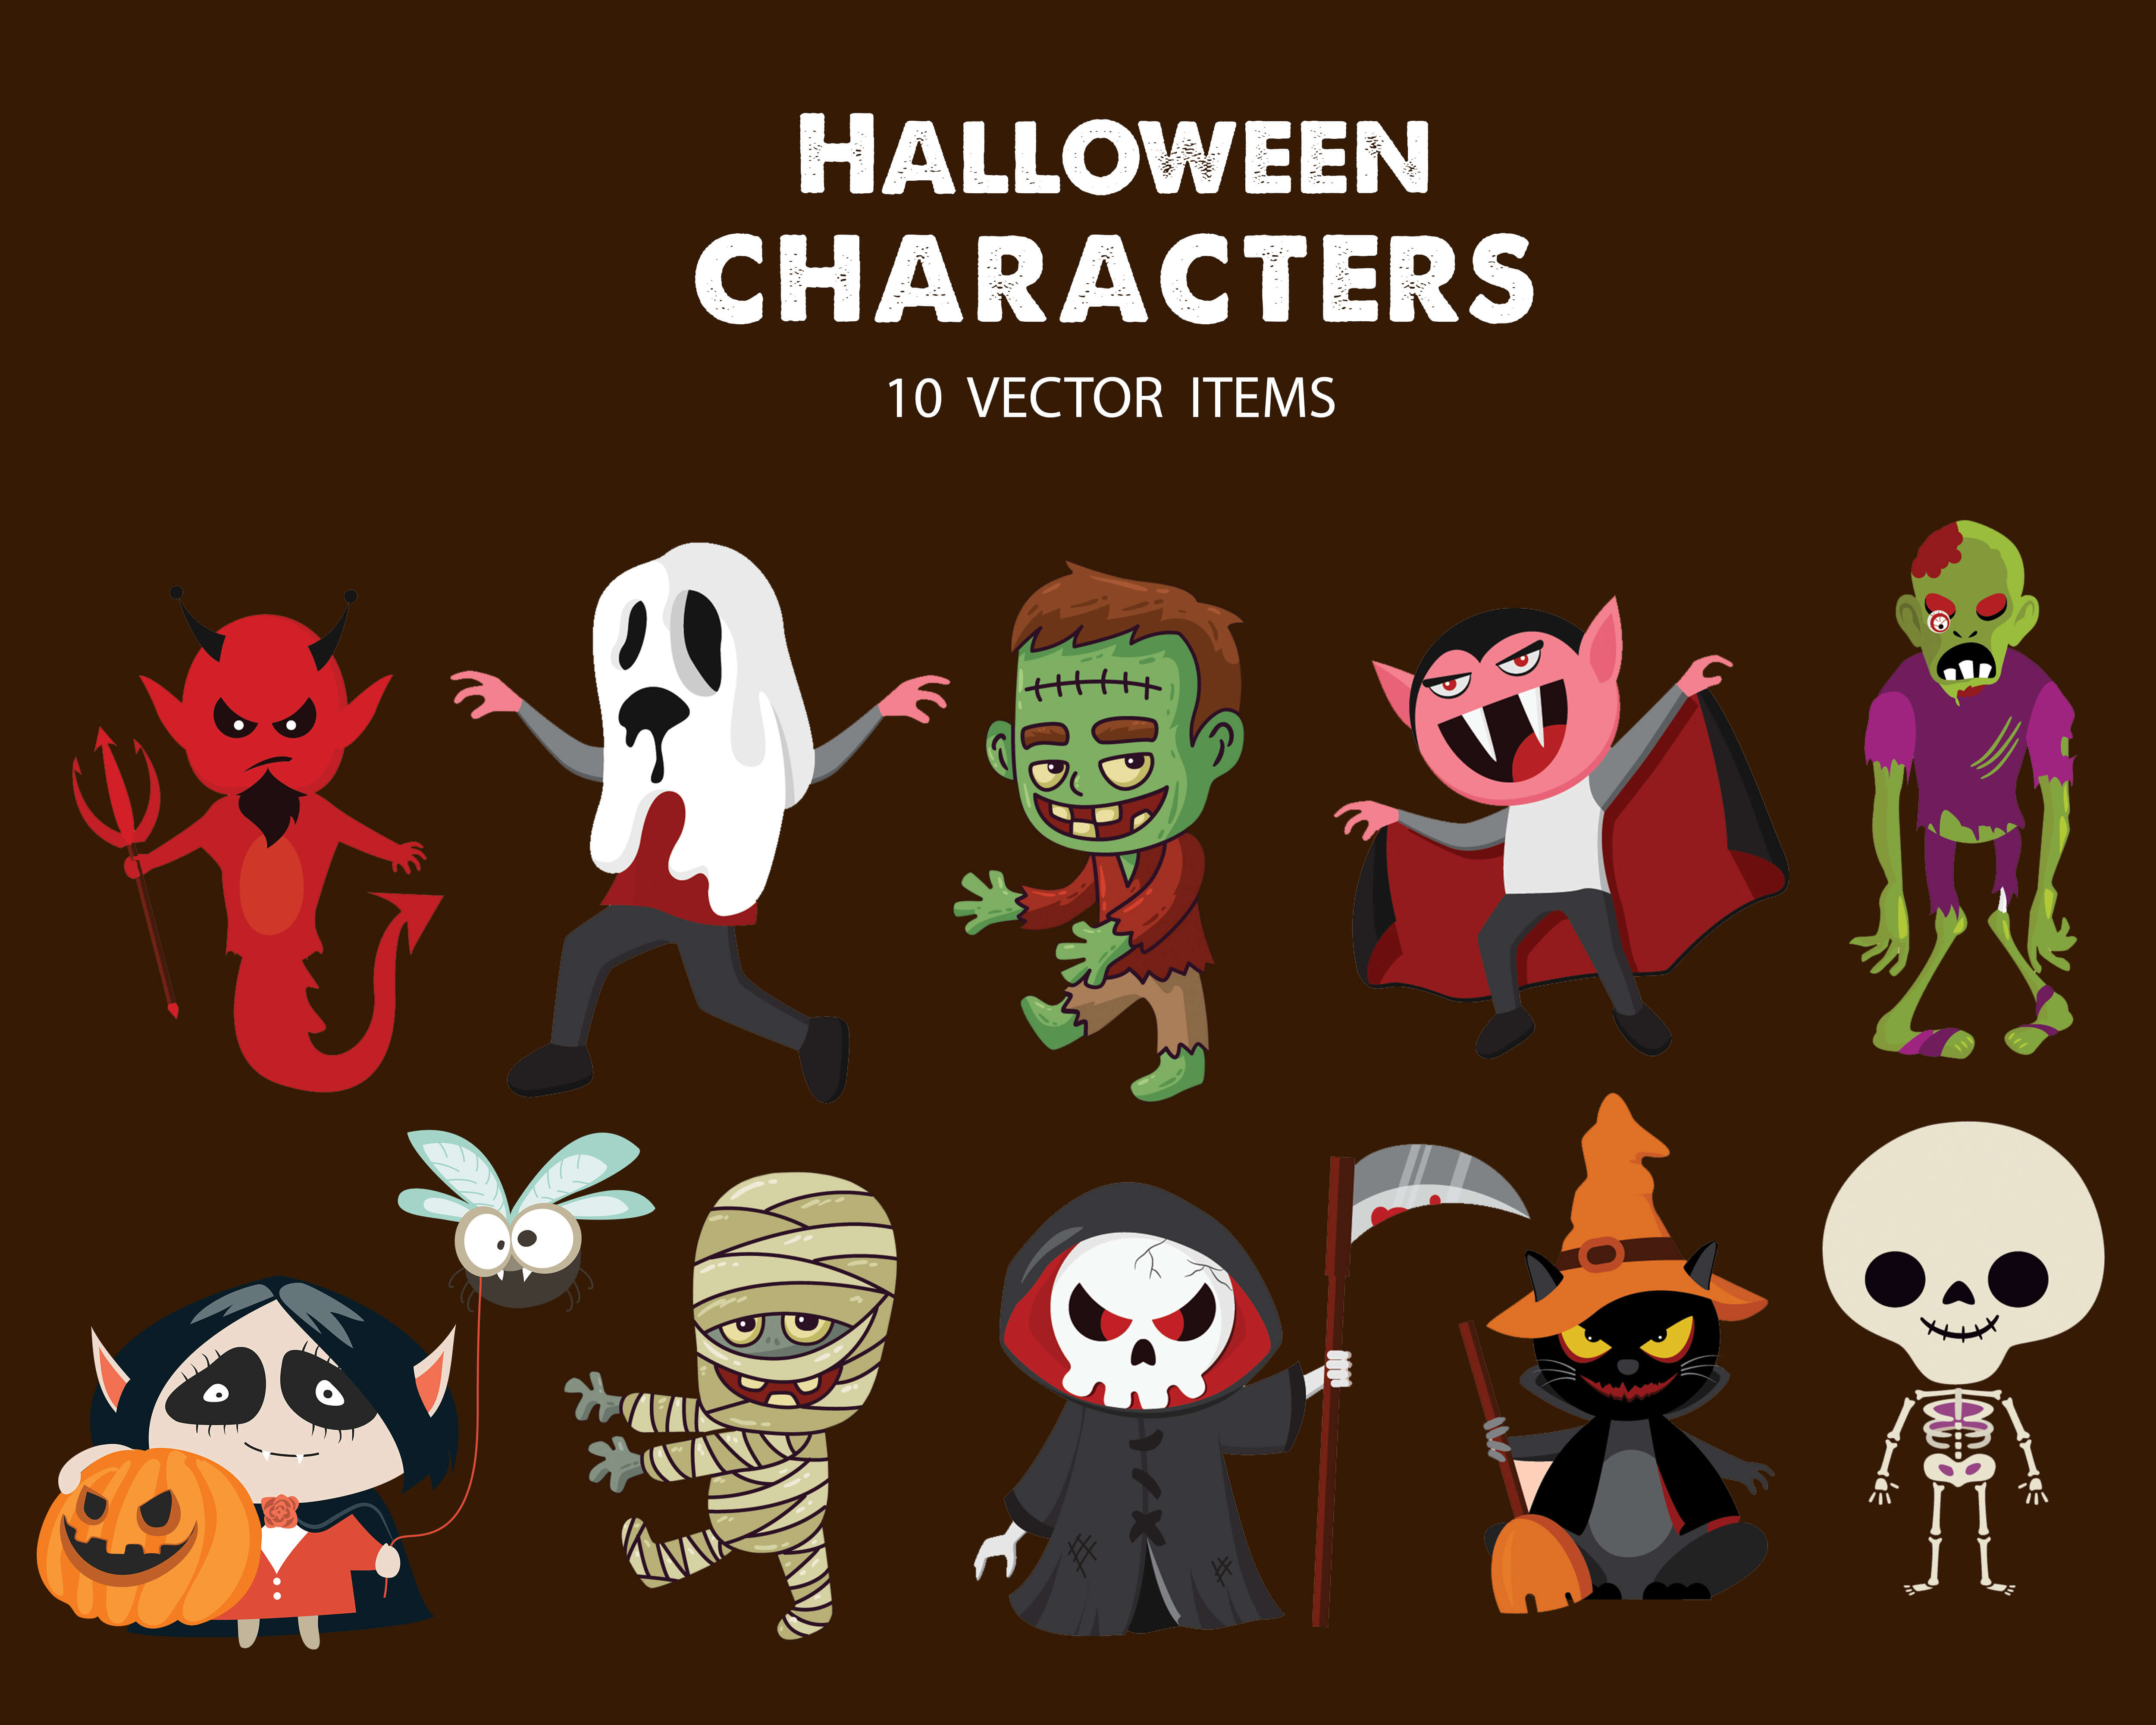 Spooky Vector Images - 10 Halloween Characters